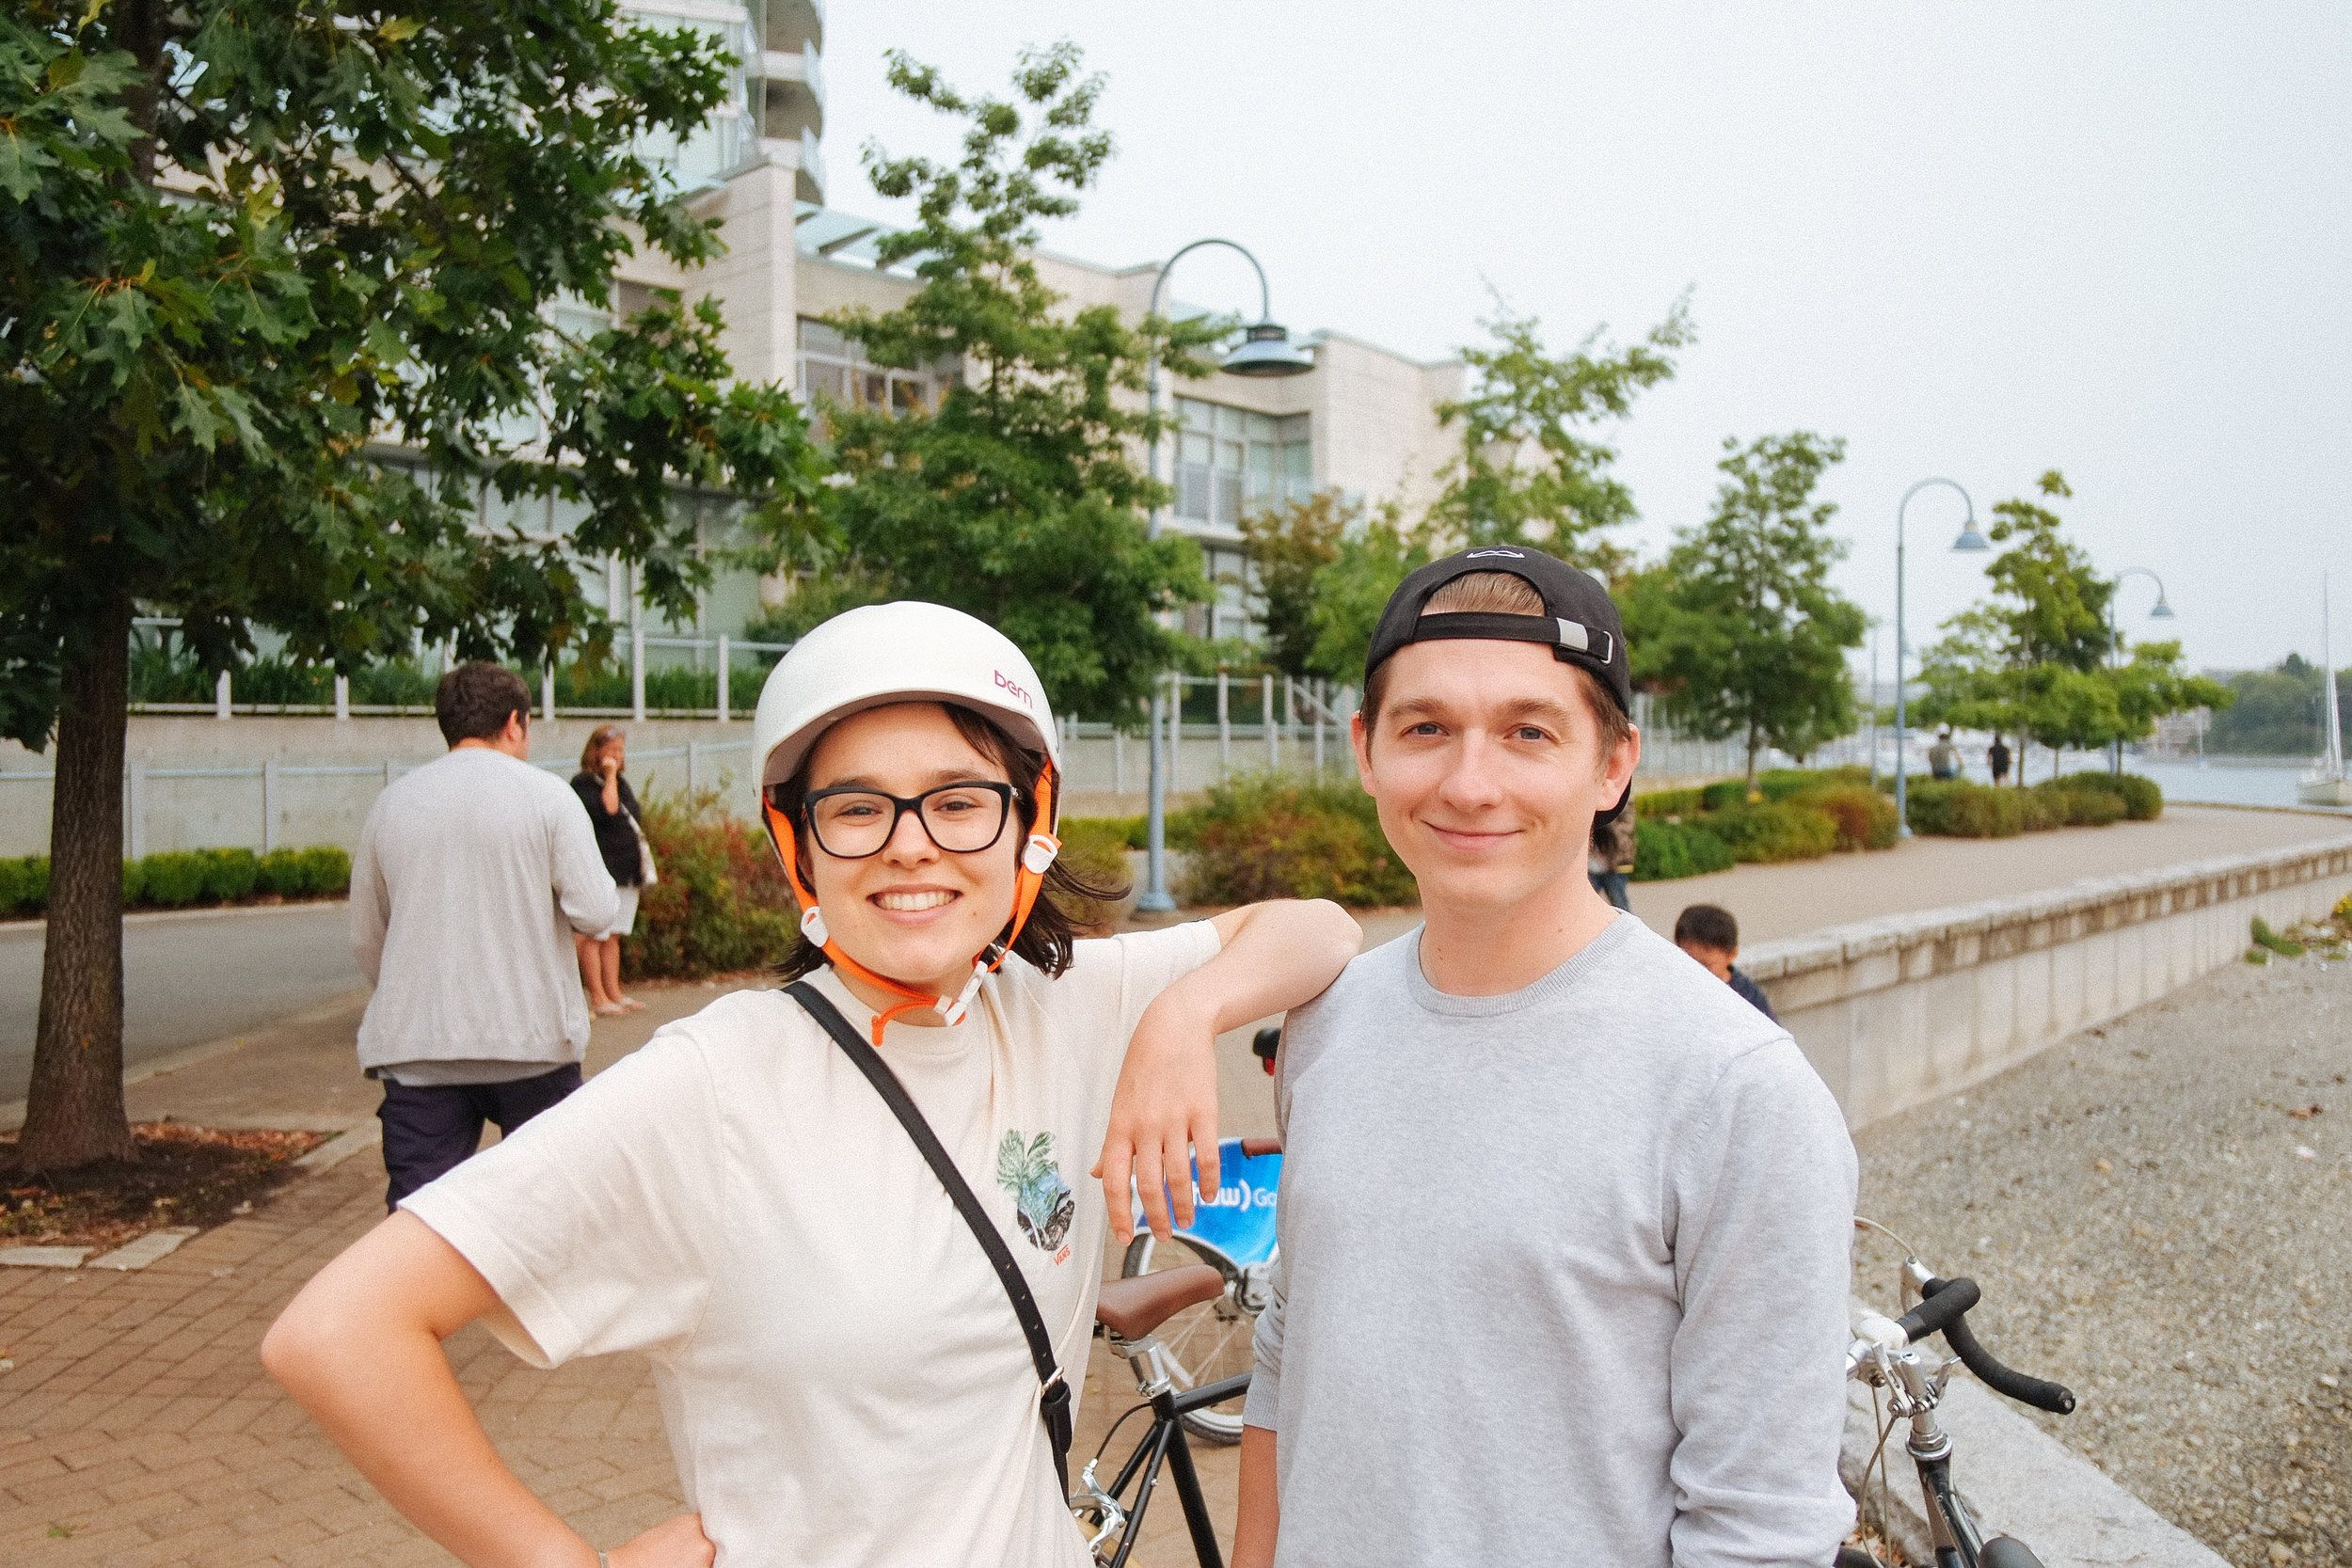 The Seawall - 2018-08-19: I really asked a lot from my friends, family, and loved ones during the august birthday week. They really delivered. I felt so much love, attention, and peace hanging out, going for coffees, dinners, drinks, and bike rides. Thank you, thank you, thank you. <3